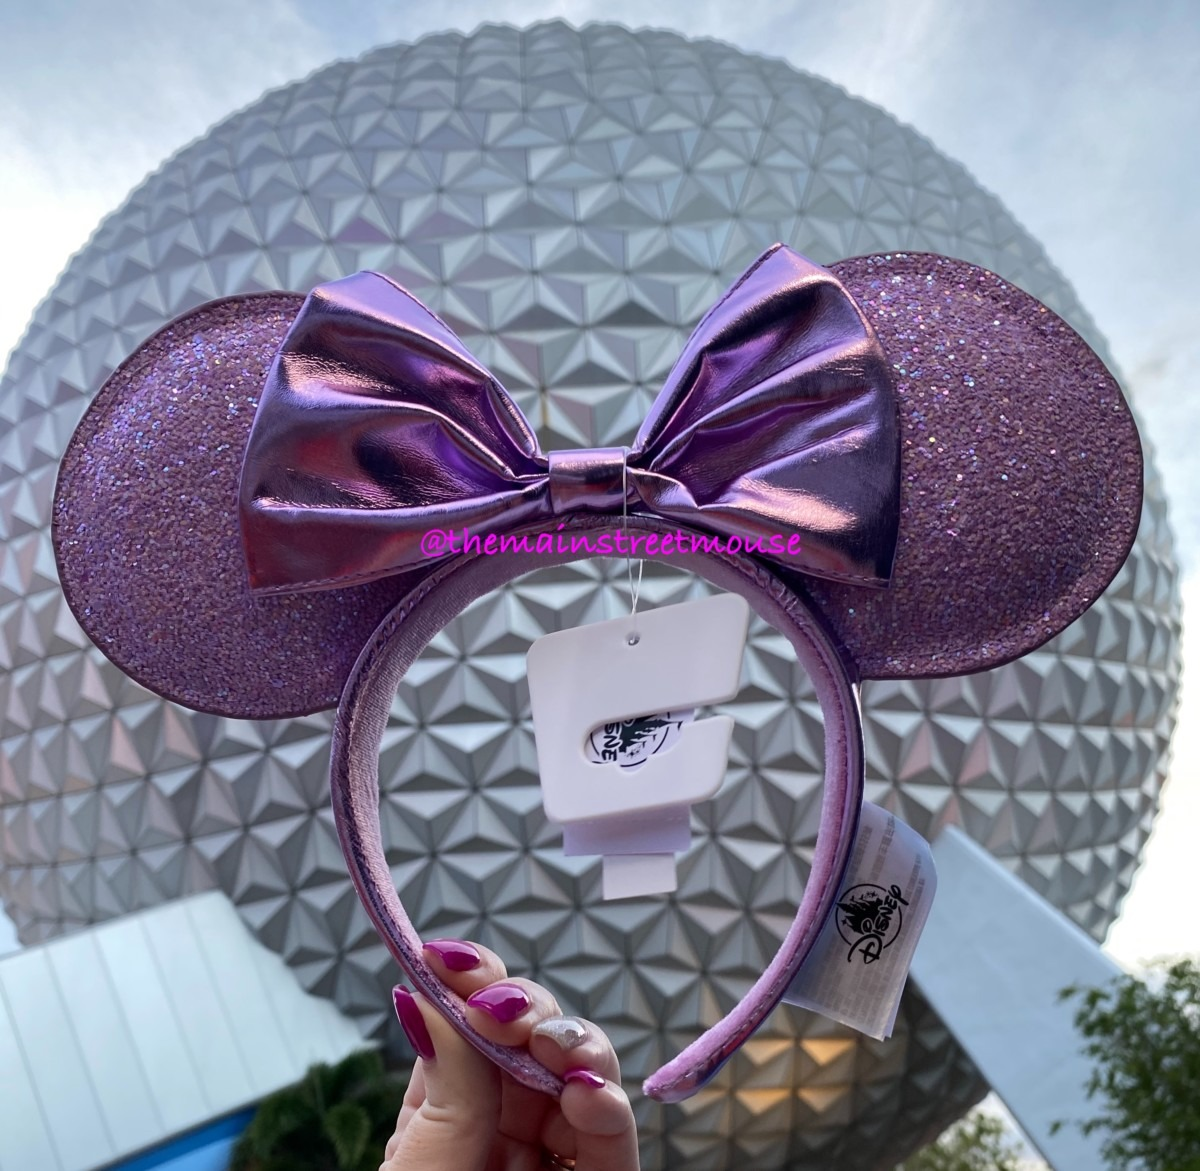 New Minnie Ear Headbands at Epcot! #disneystyle 1